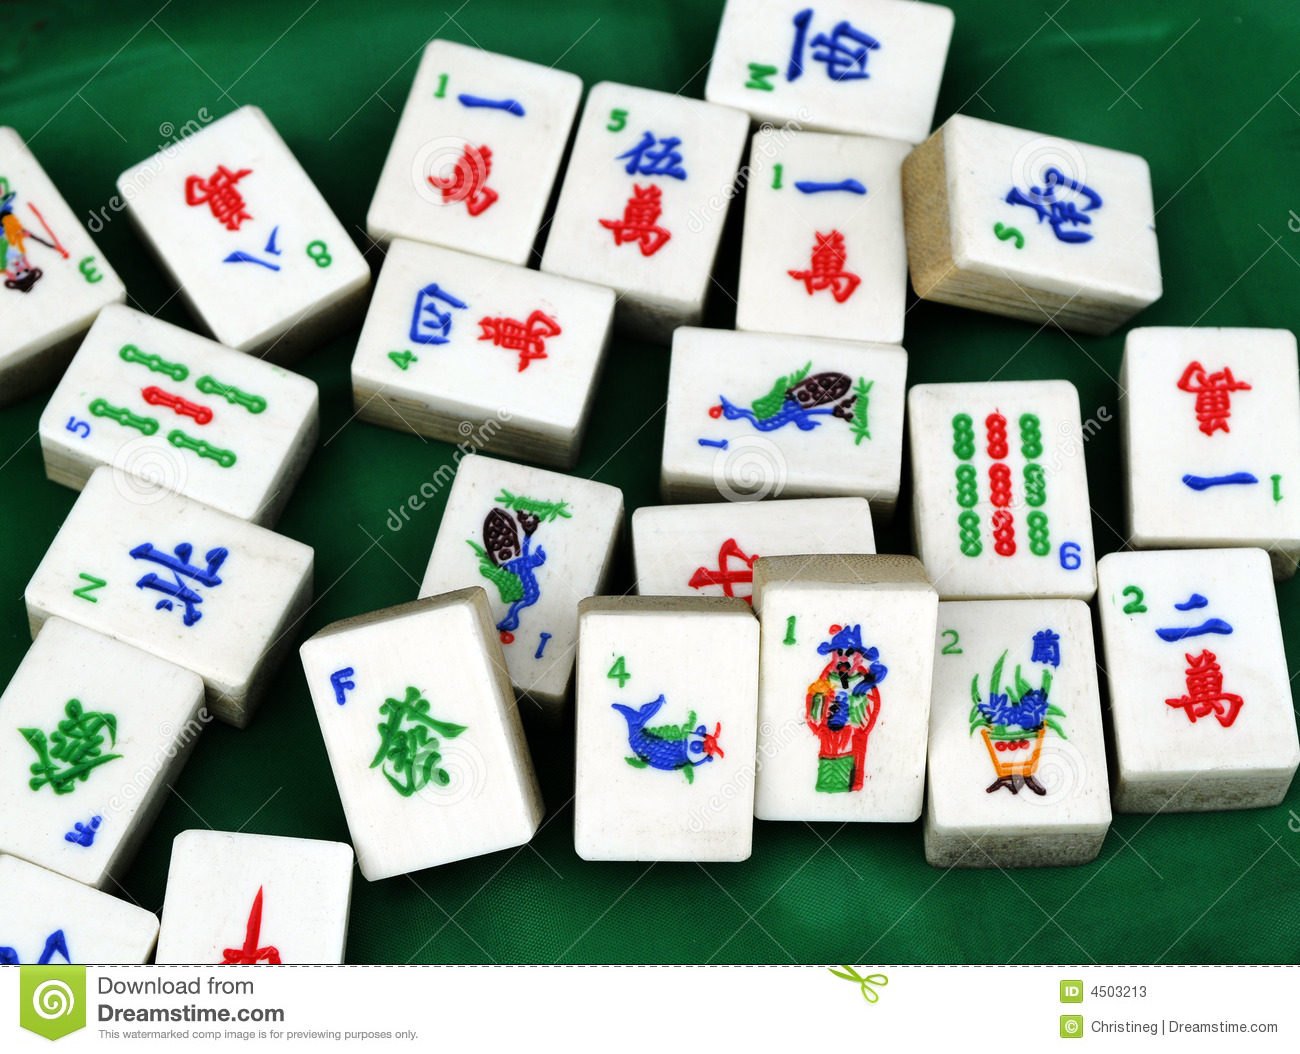 Free classic mahjong download full version – free download mobile.